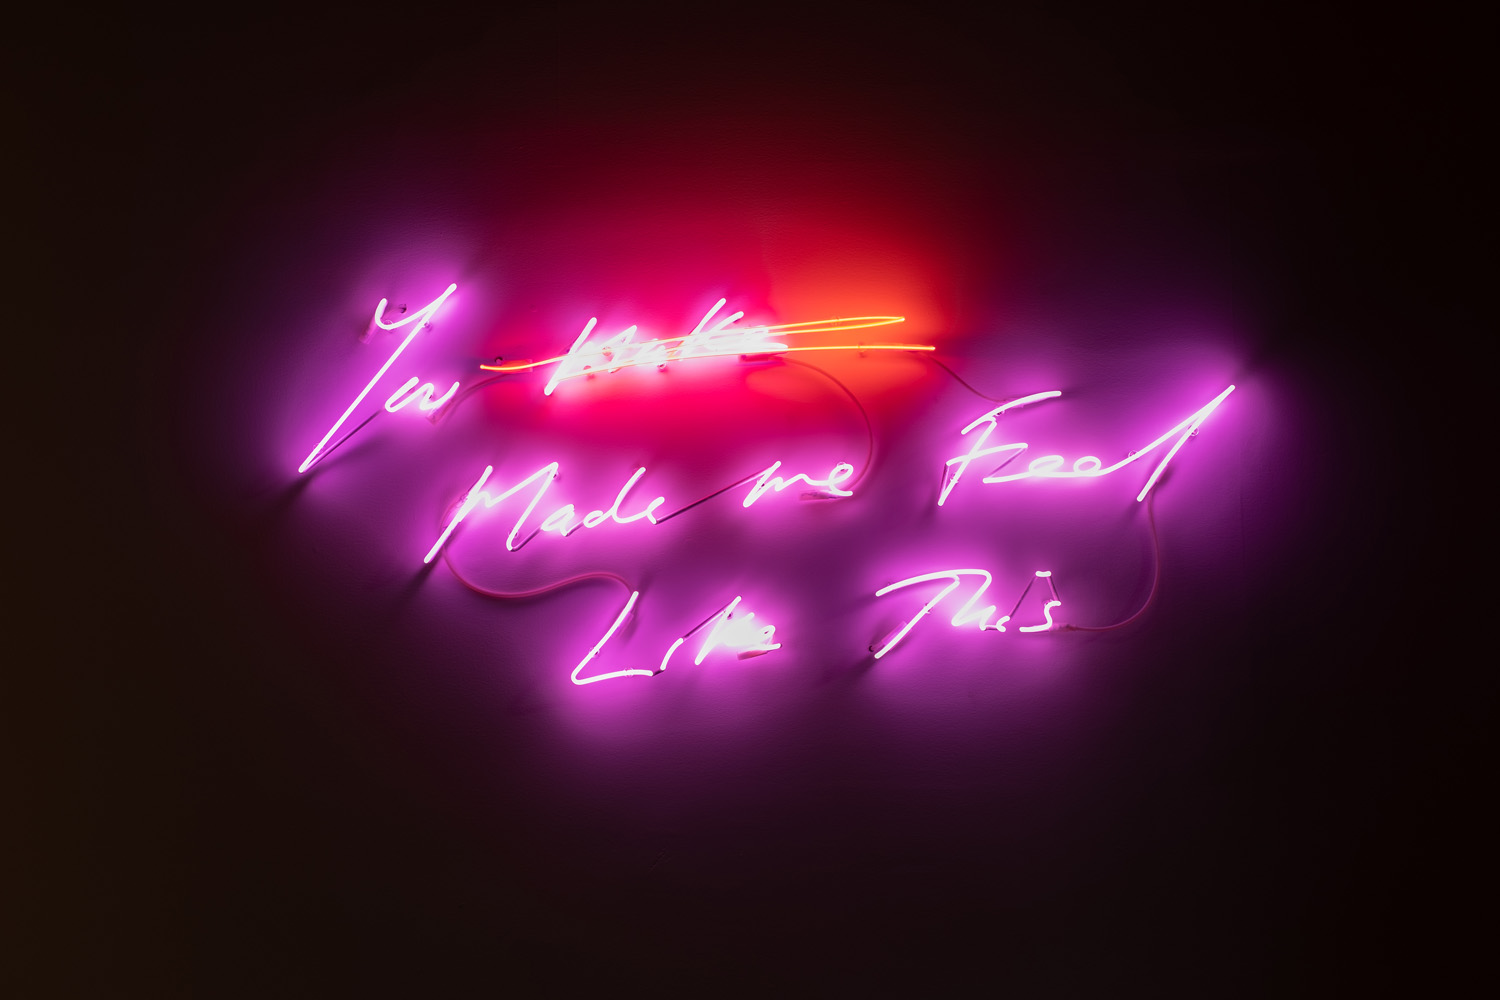 """Tracey Emin ,  You Made Me Feel Like This , 2018, Ed. 1/3, Neon (magenta and light red), 28 1/8"""" x 65 5/8"""" (71,4 x 166,7 cm)"""